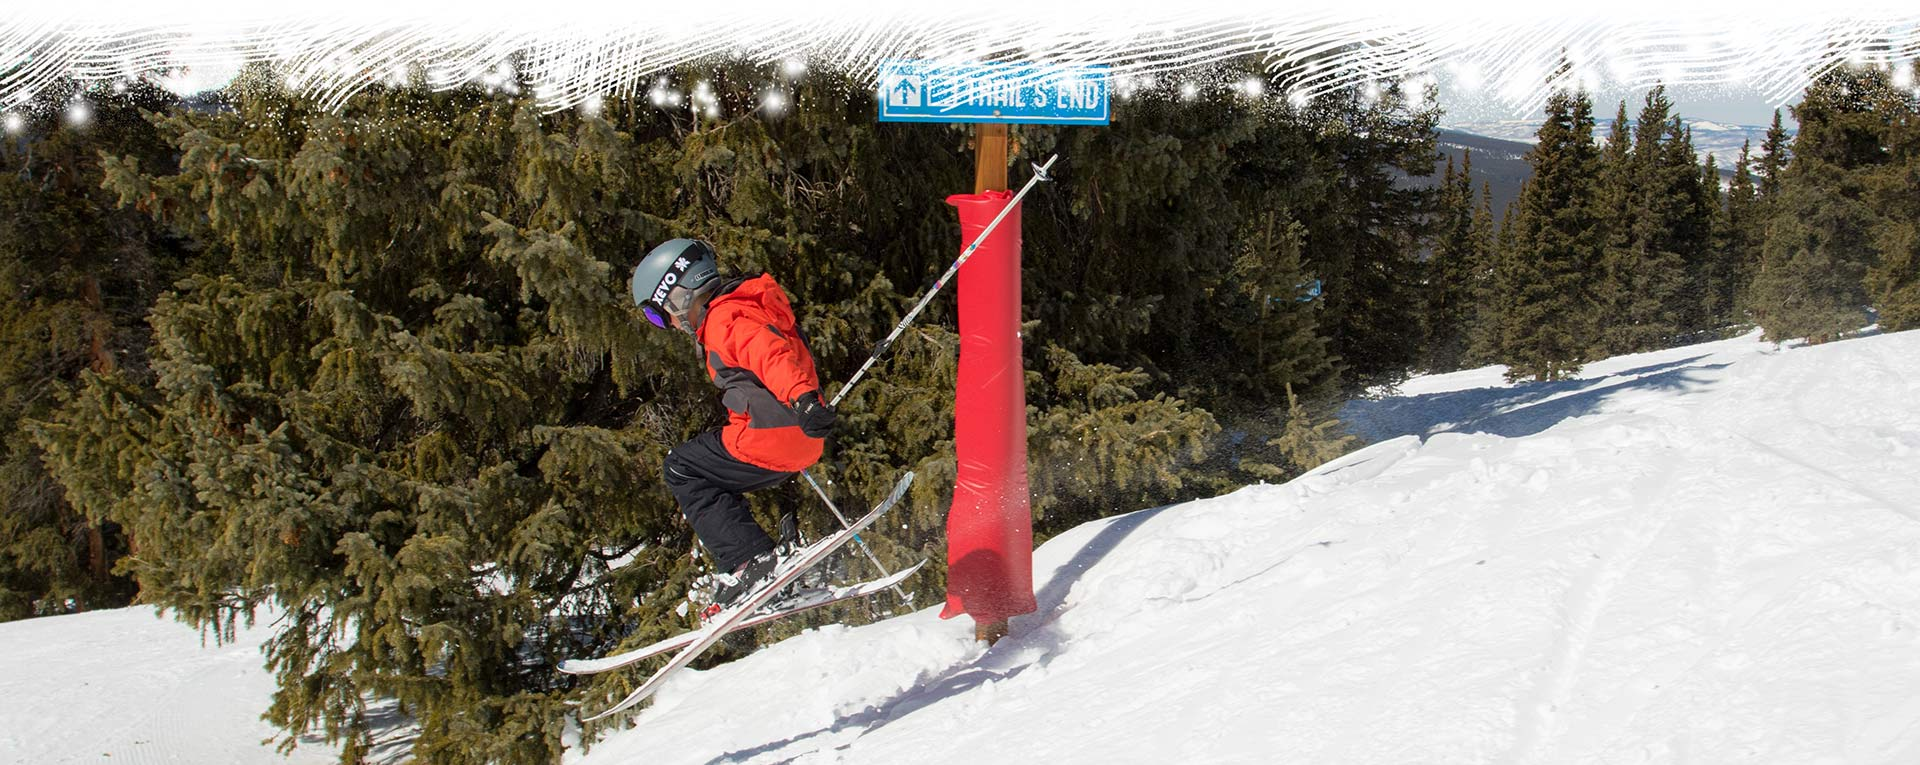 young skier mid-jump